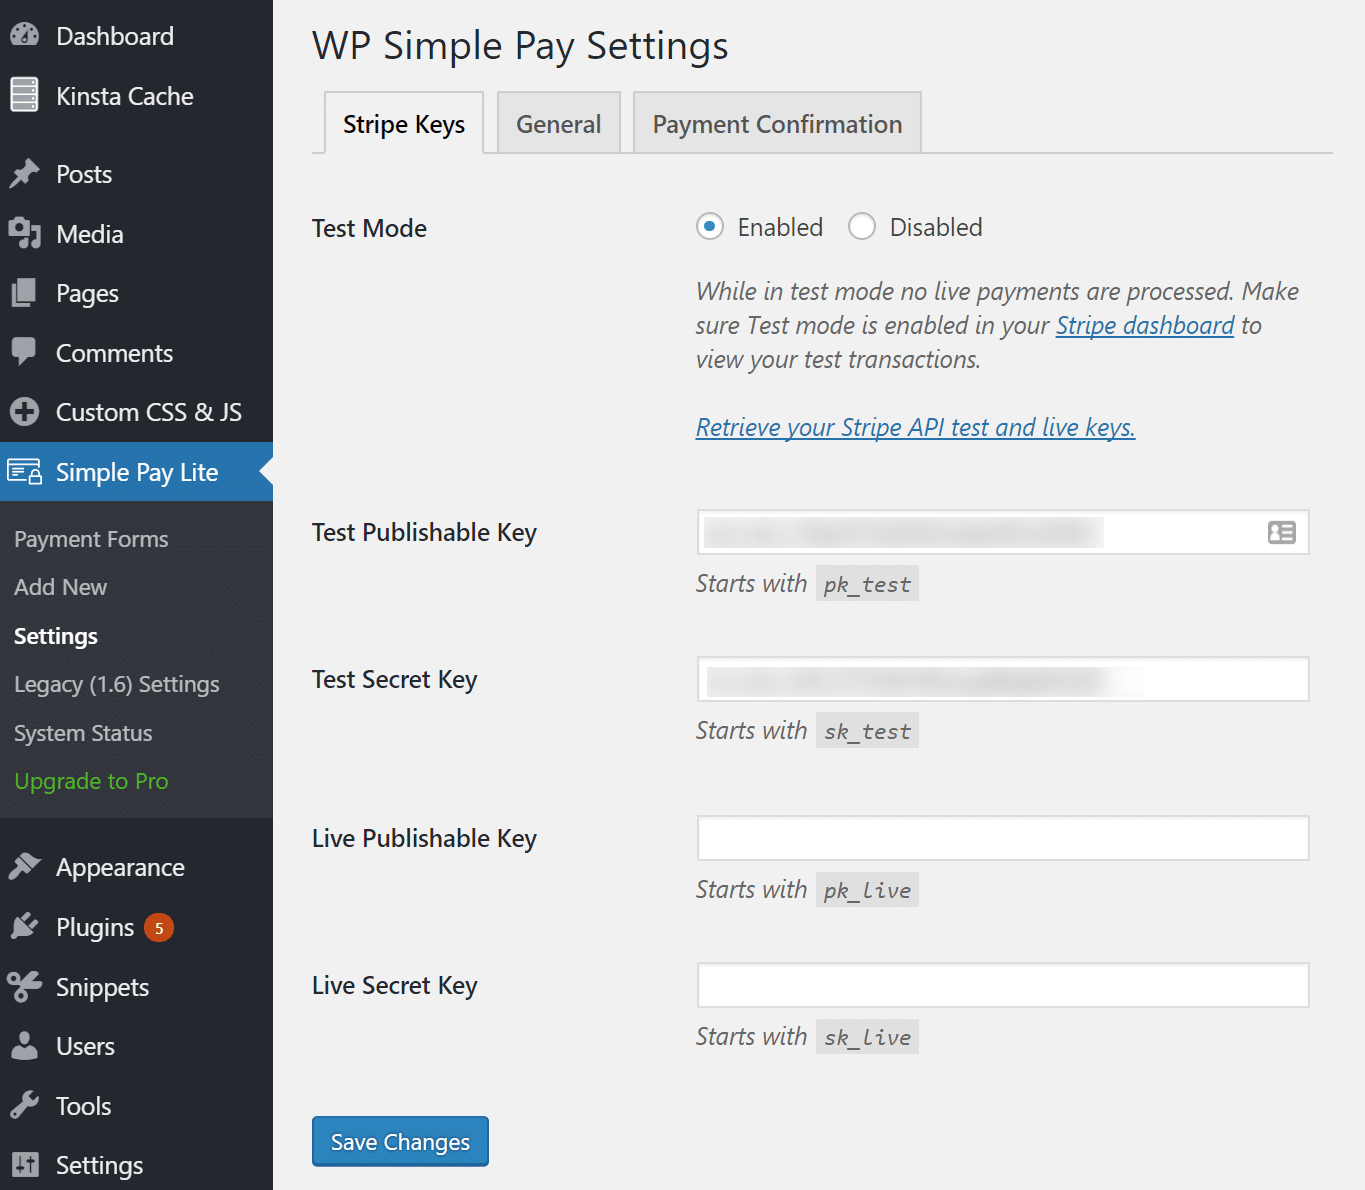 Installer l'extension WP Simple Pay Lite